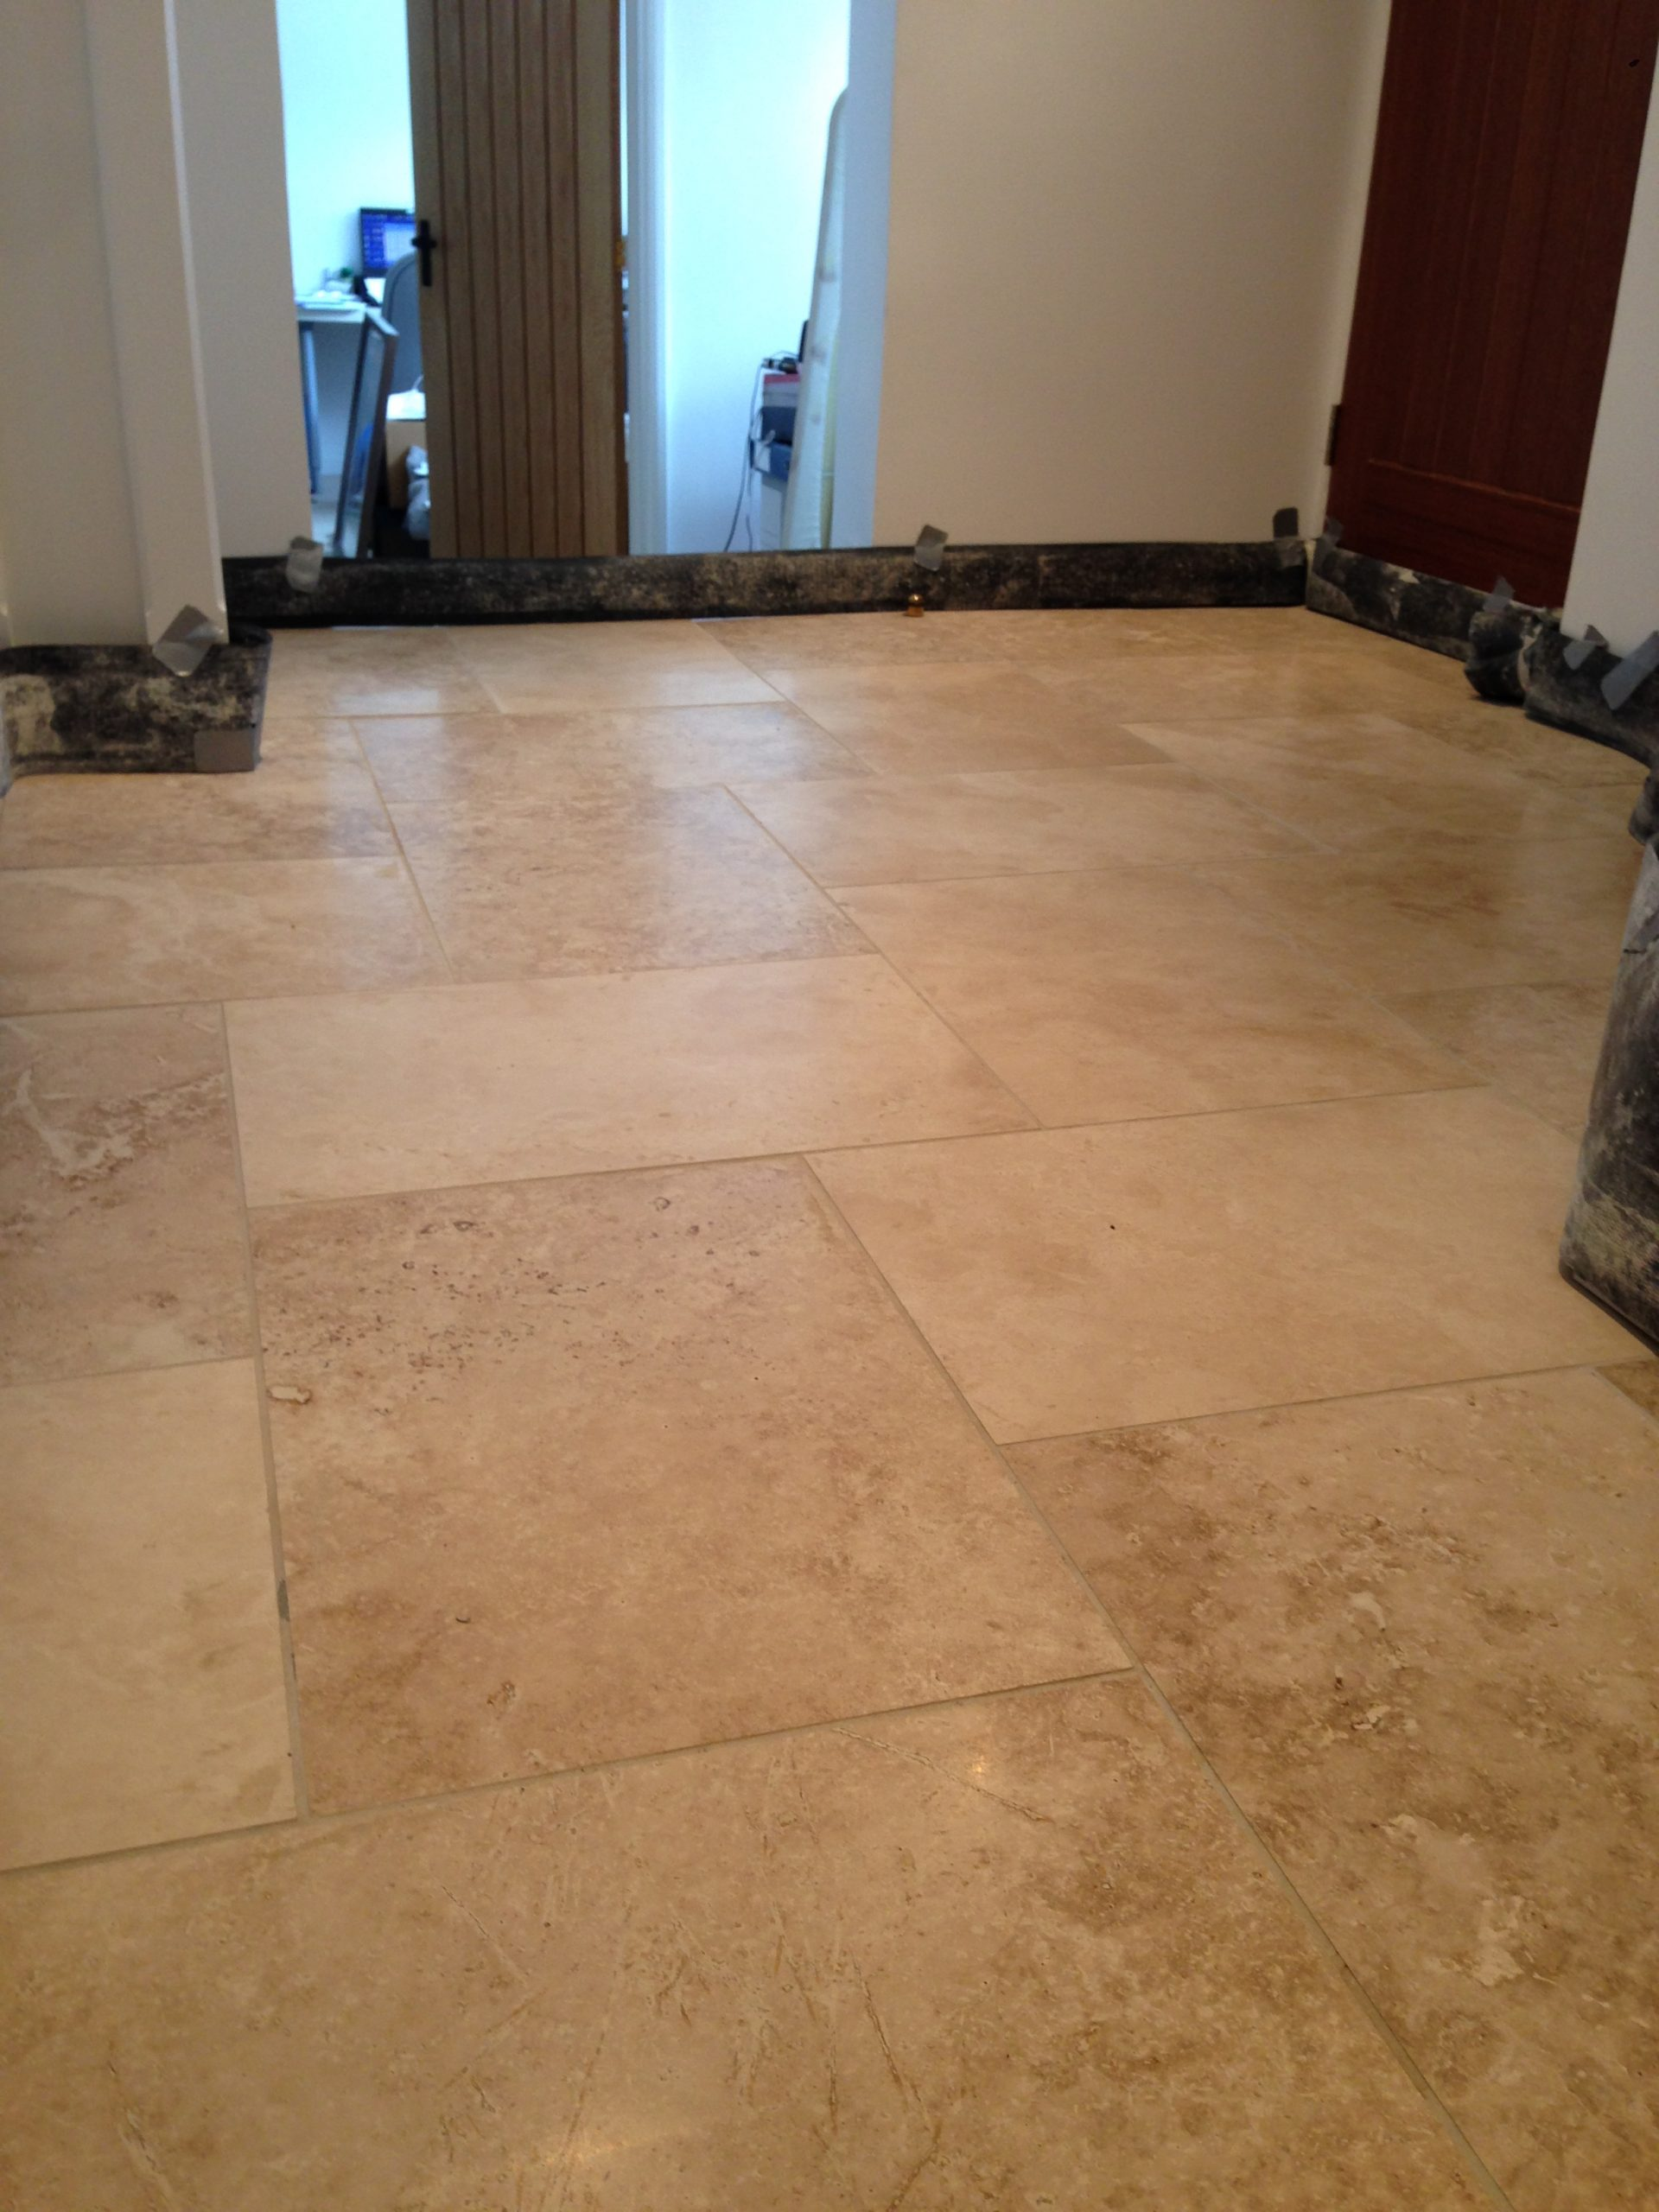 Sandstone Kitchen Floor Tiles Travertine Stone Floor Cotswold Stone Floor Cleaners